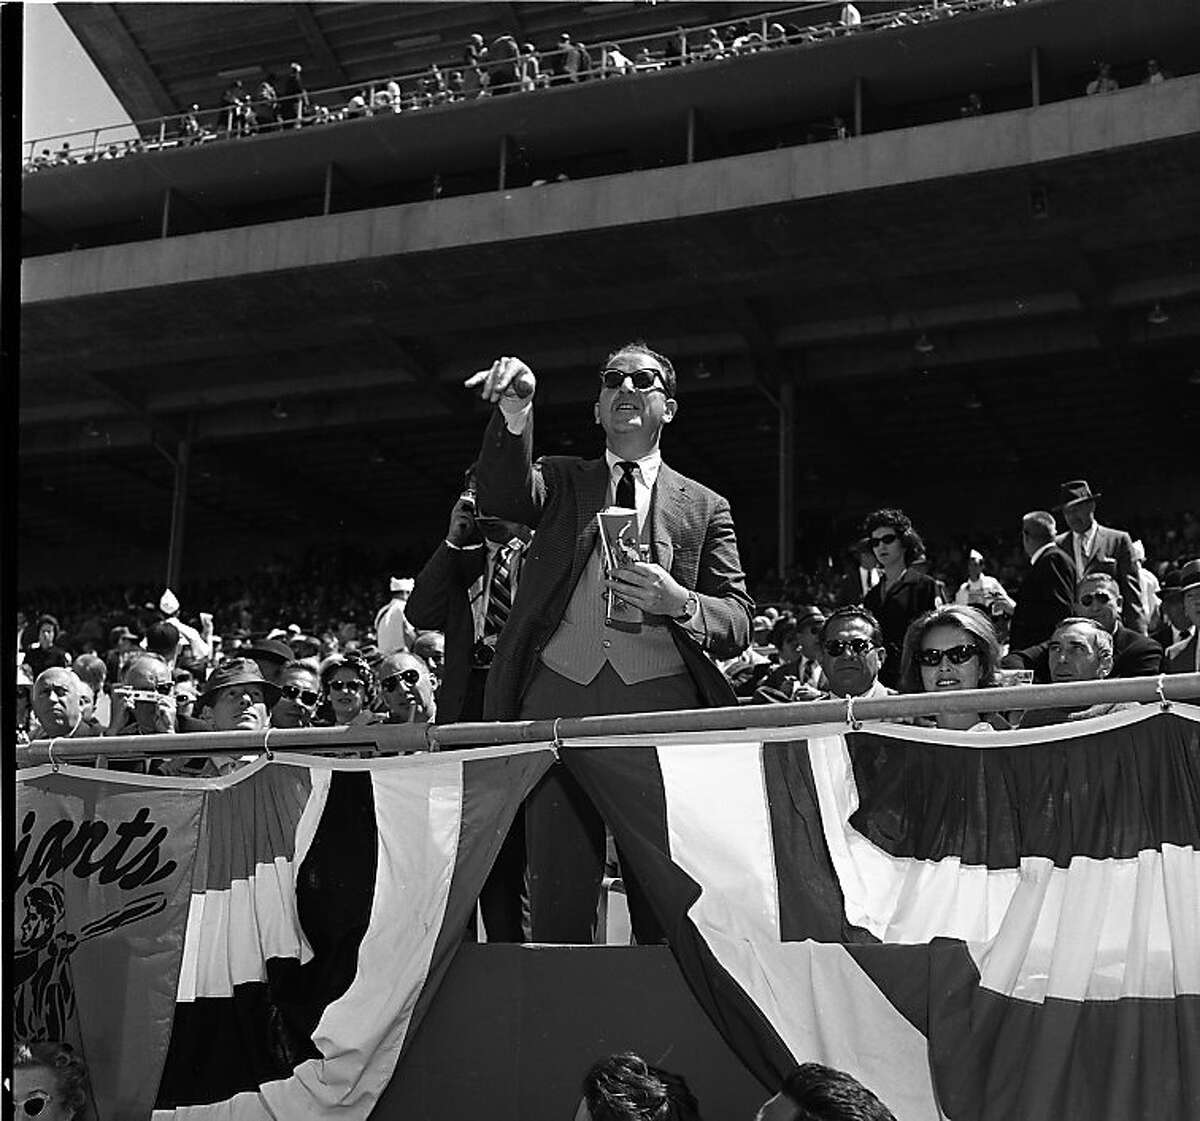 April 20, 1961: Herb Caen at Giants opening day at Candlestick Park.